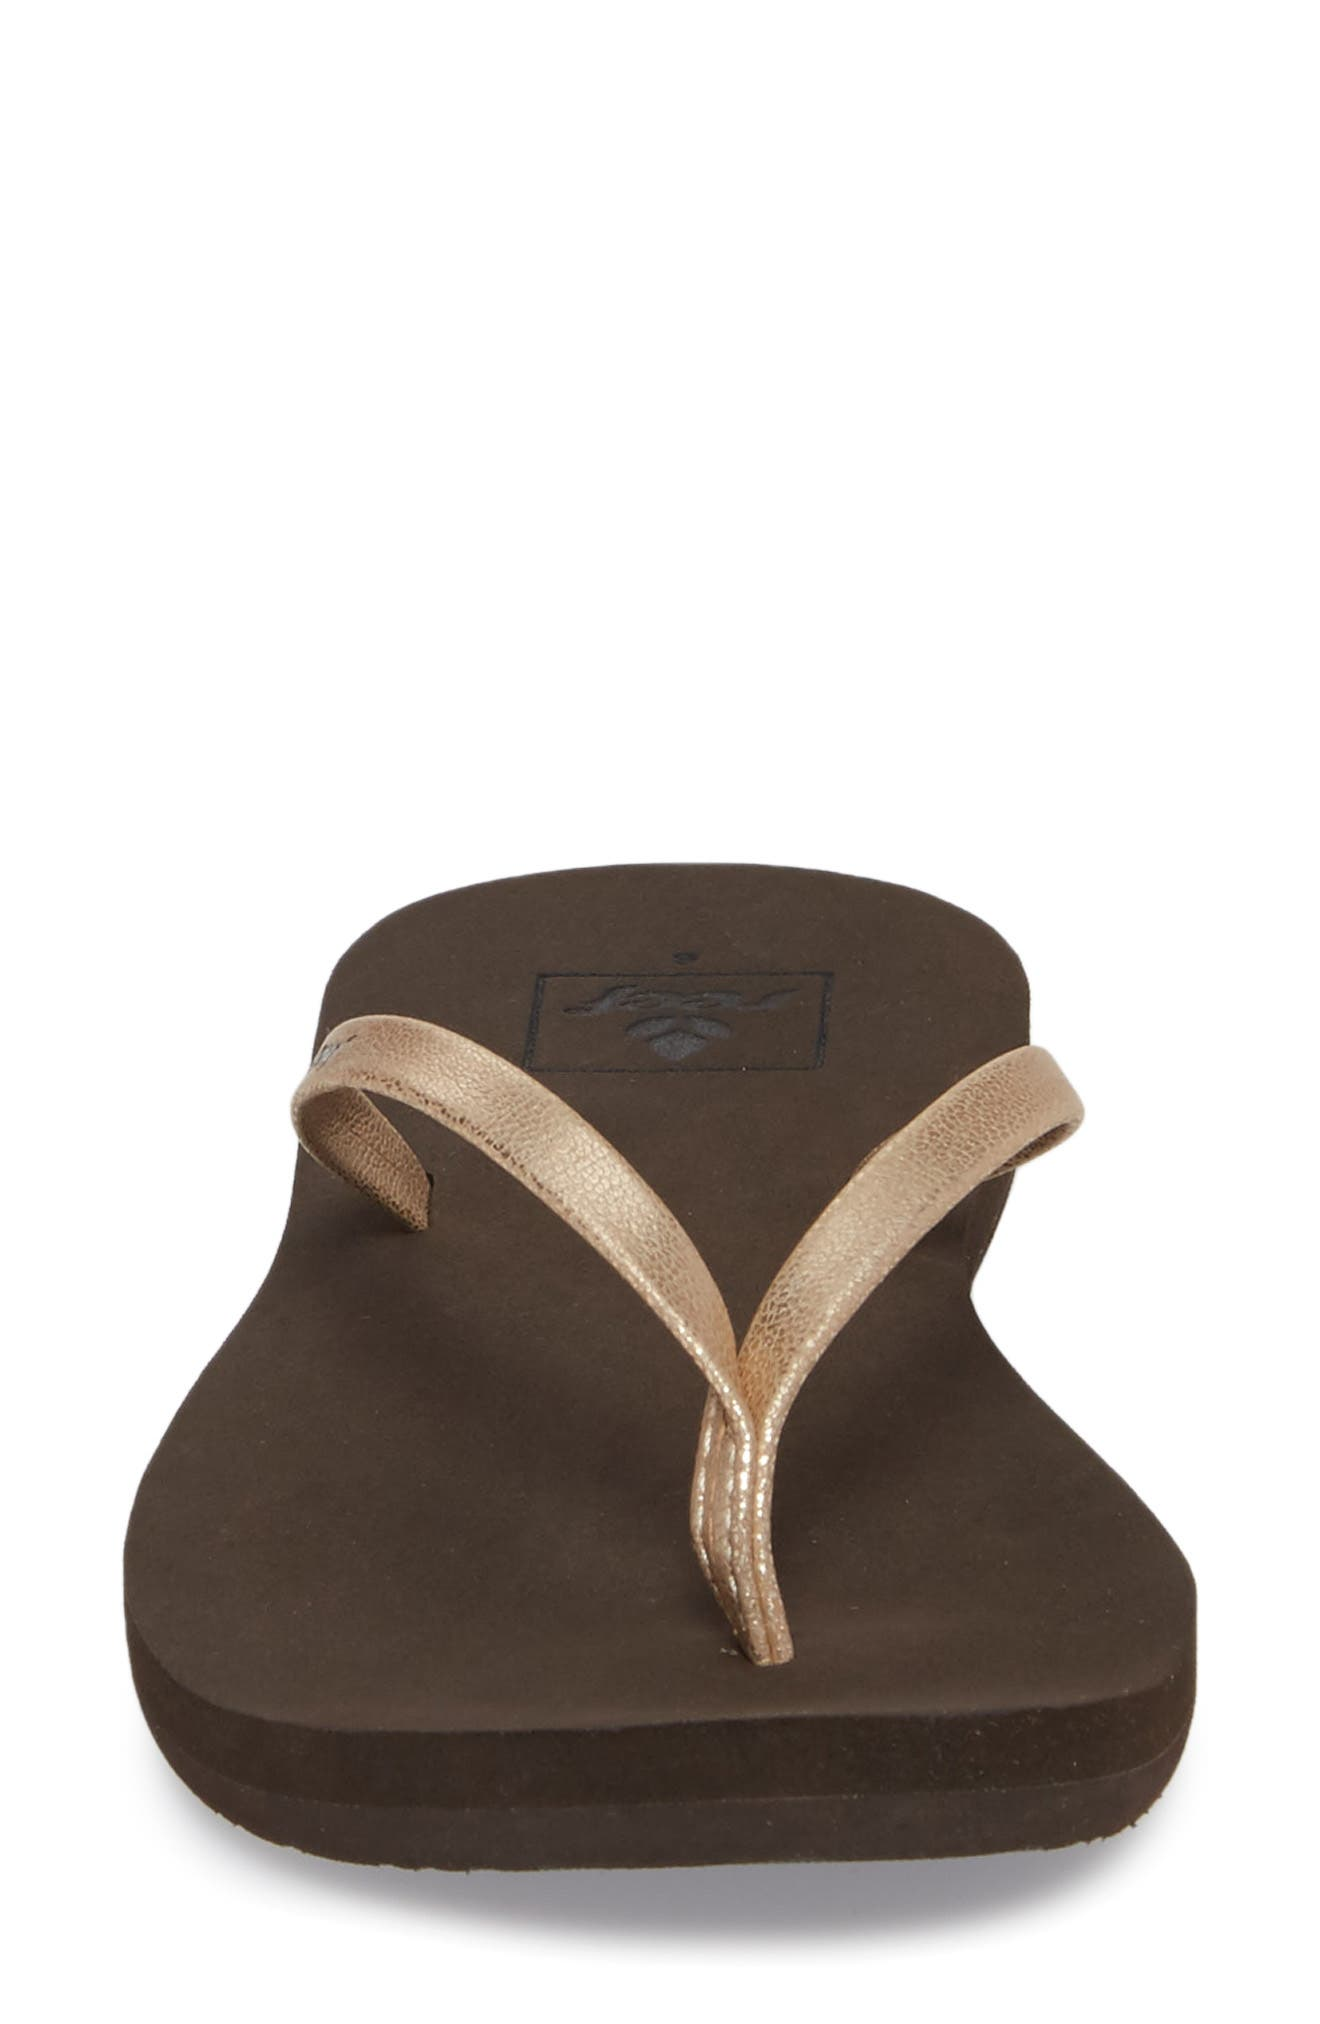 REEF, Bliss Nights Flip Flop, Alternate thumbnail 4, color, ROSE GOLD